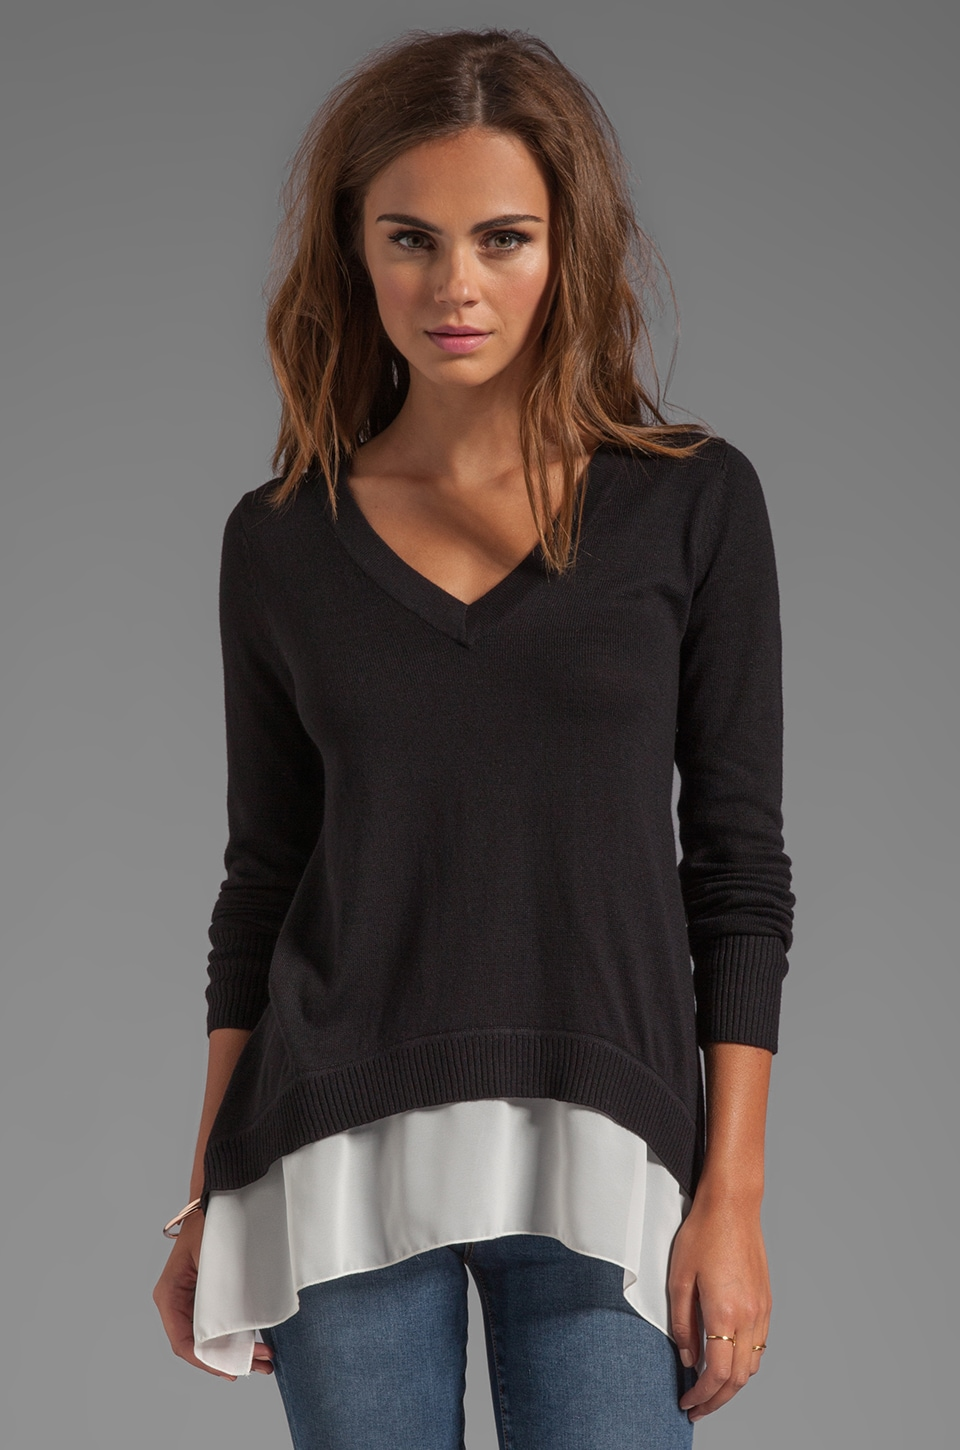 Central Park West V Neck Marblehead Sweater in Black/White